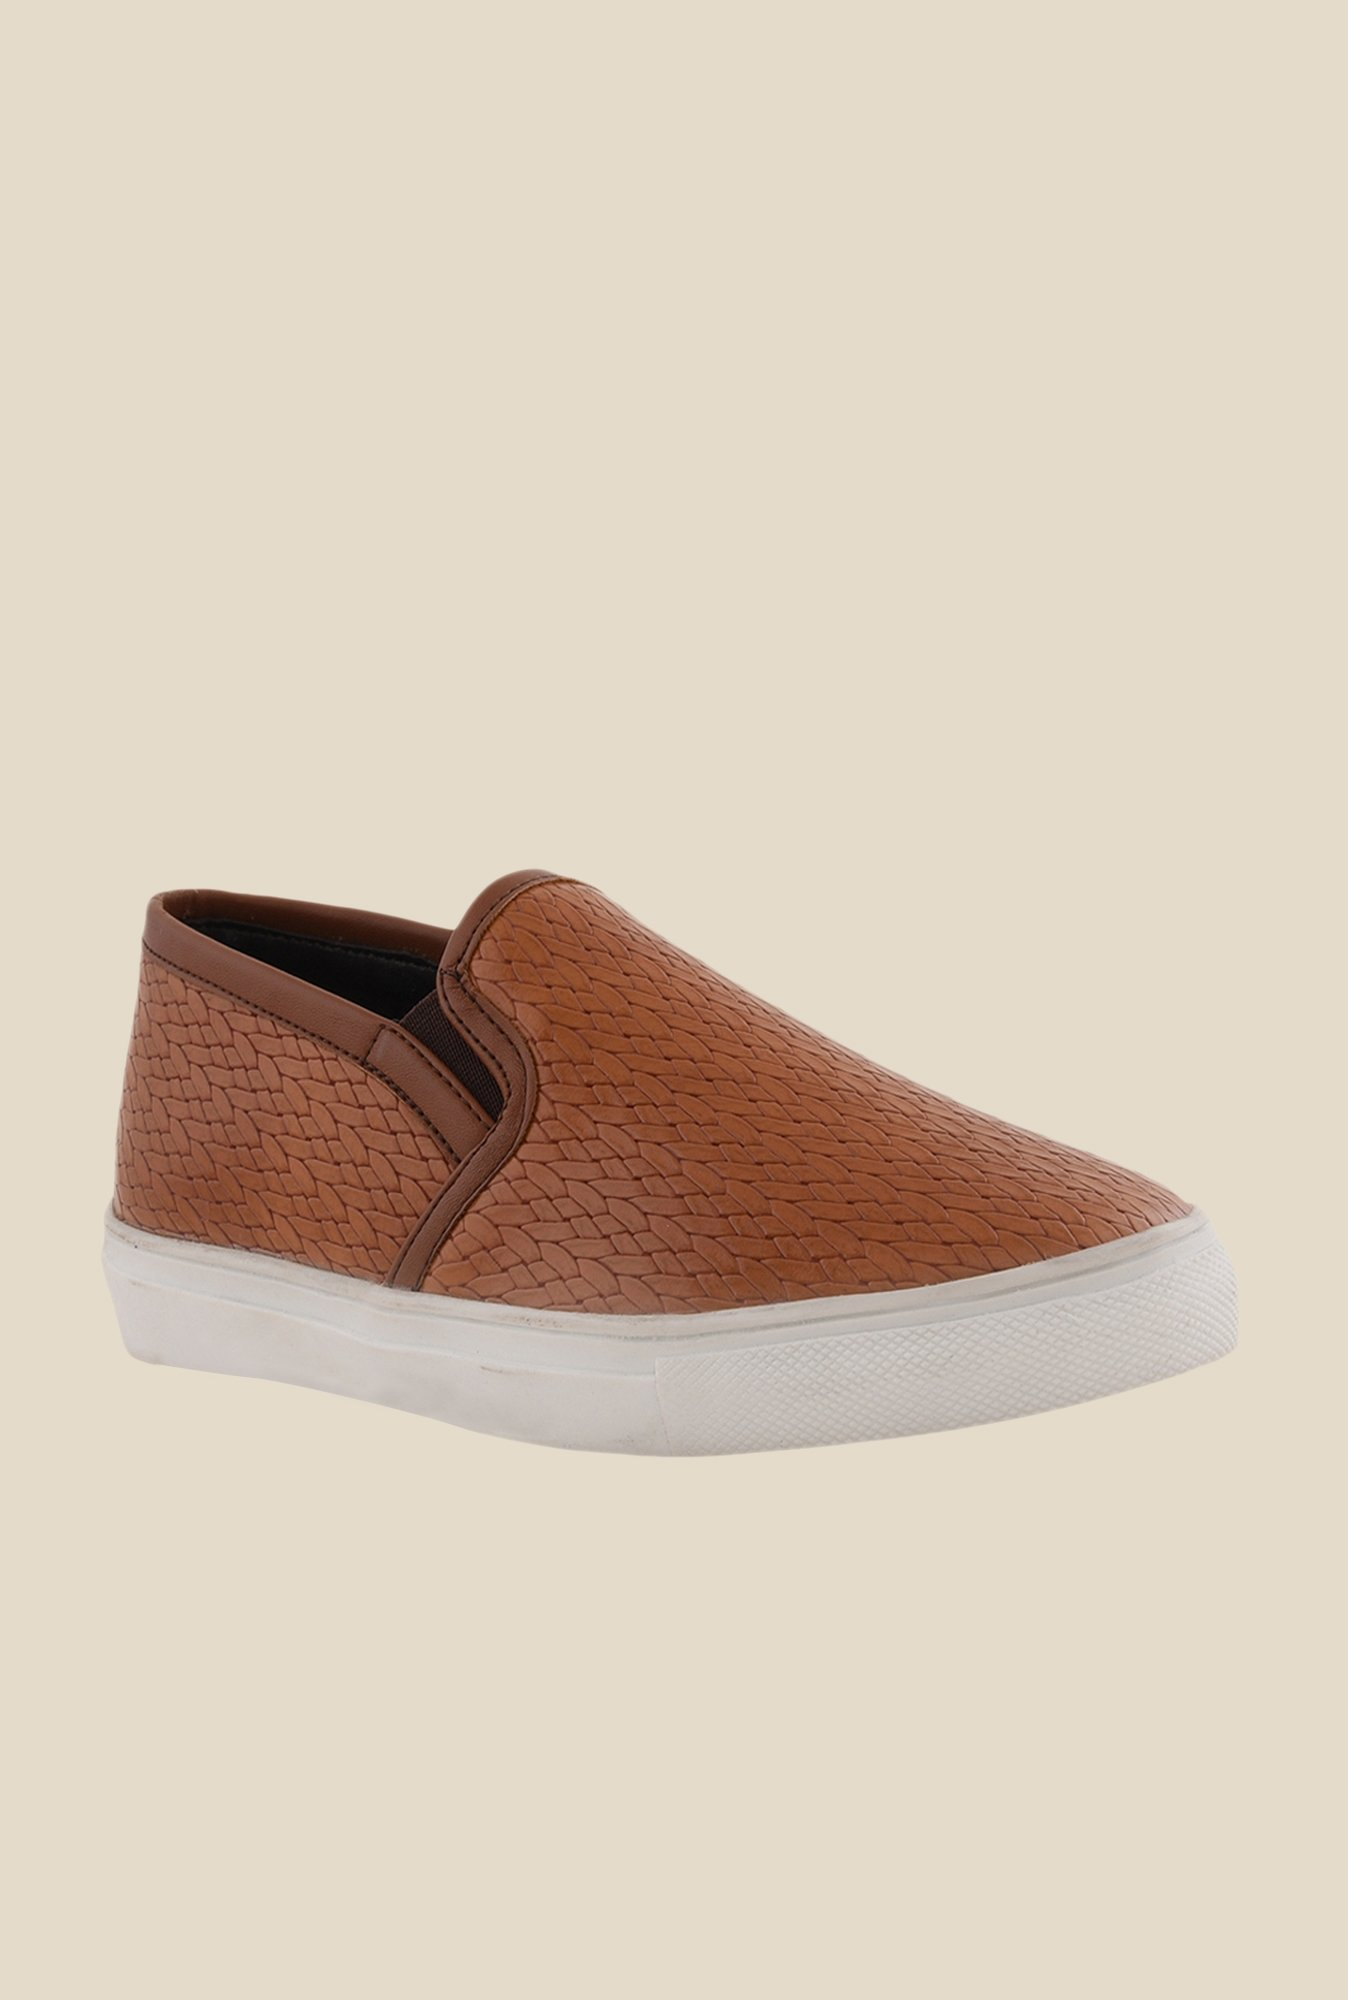 Bruno Manetti Tan & White Plimsolls